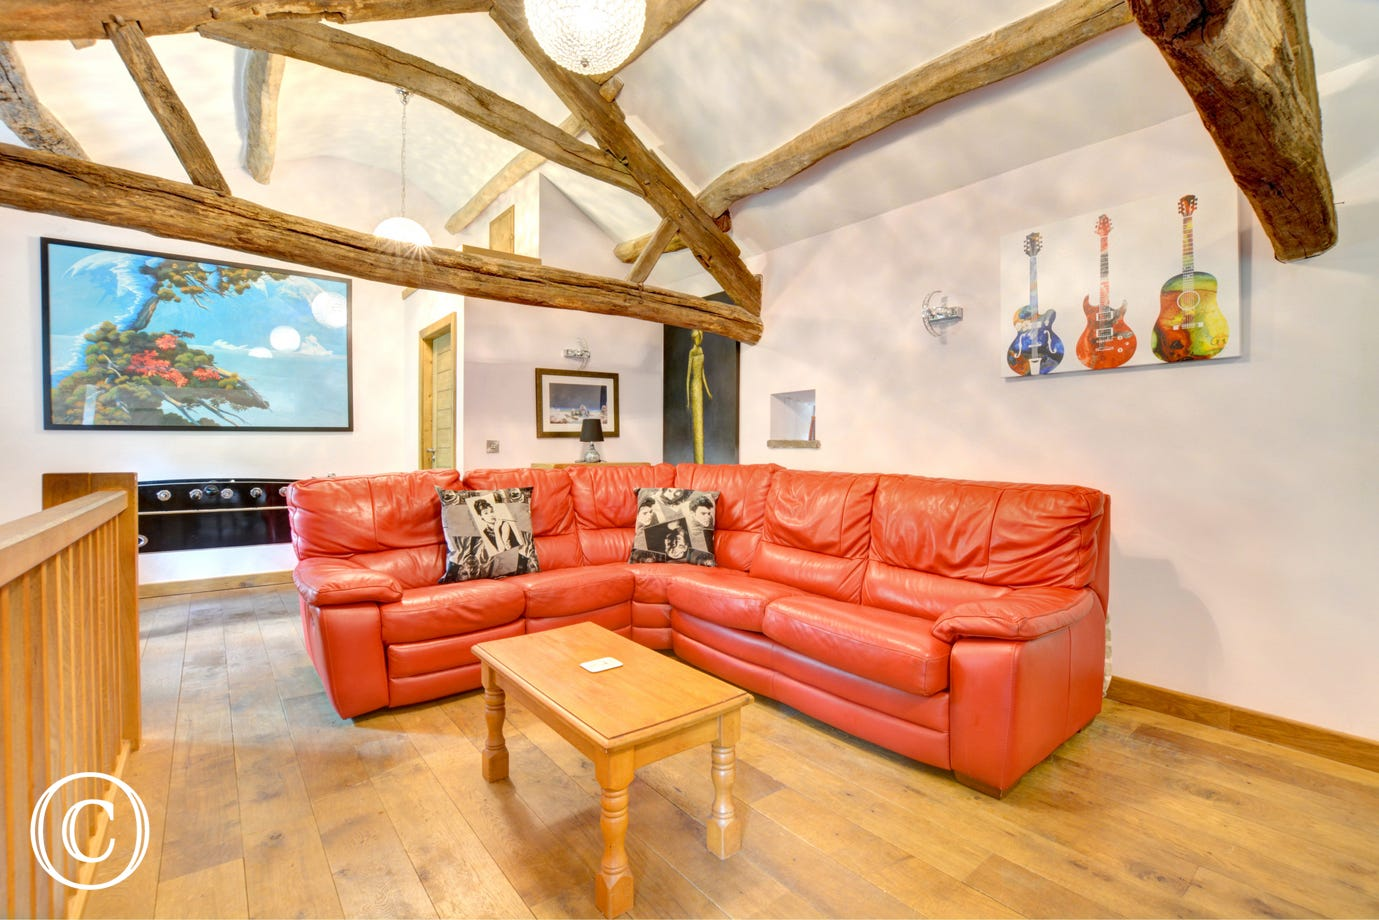 The games room has fabulous exposed beams.